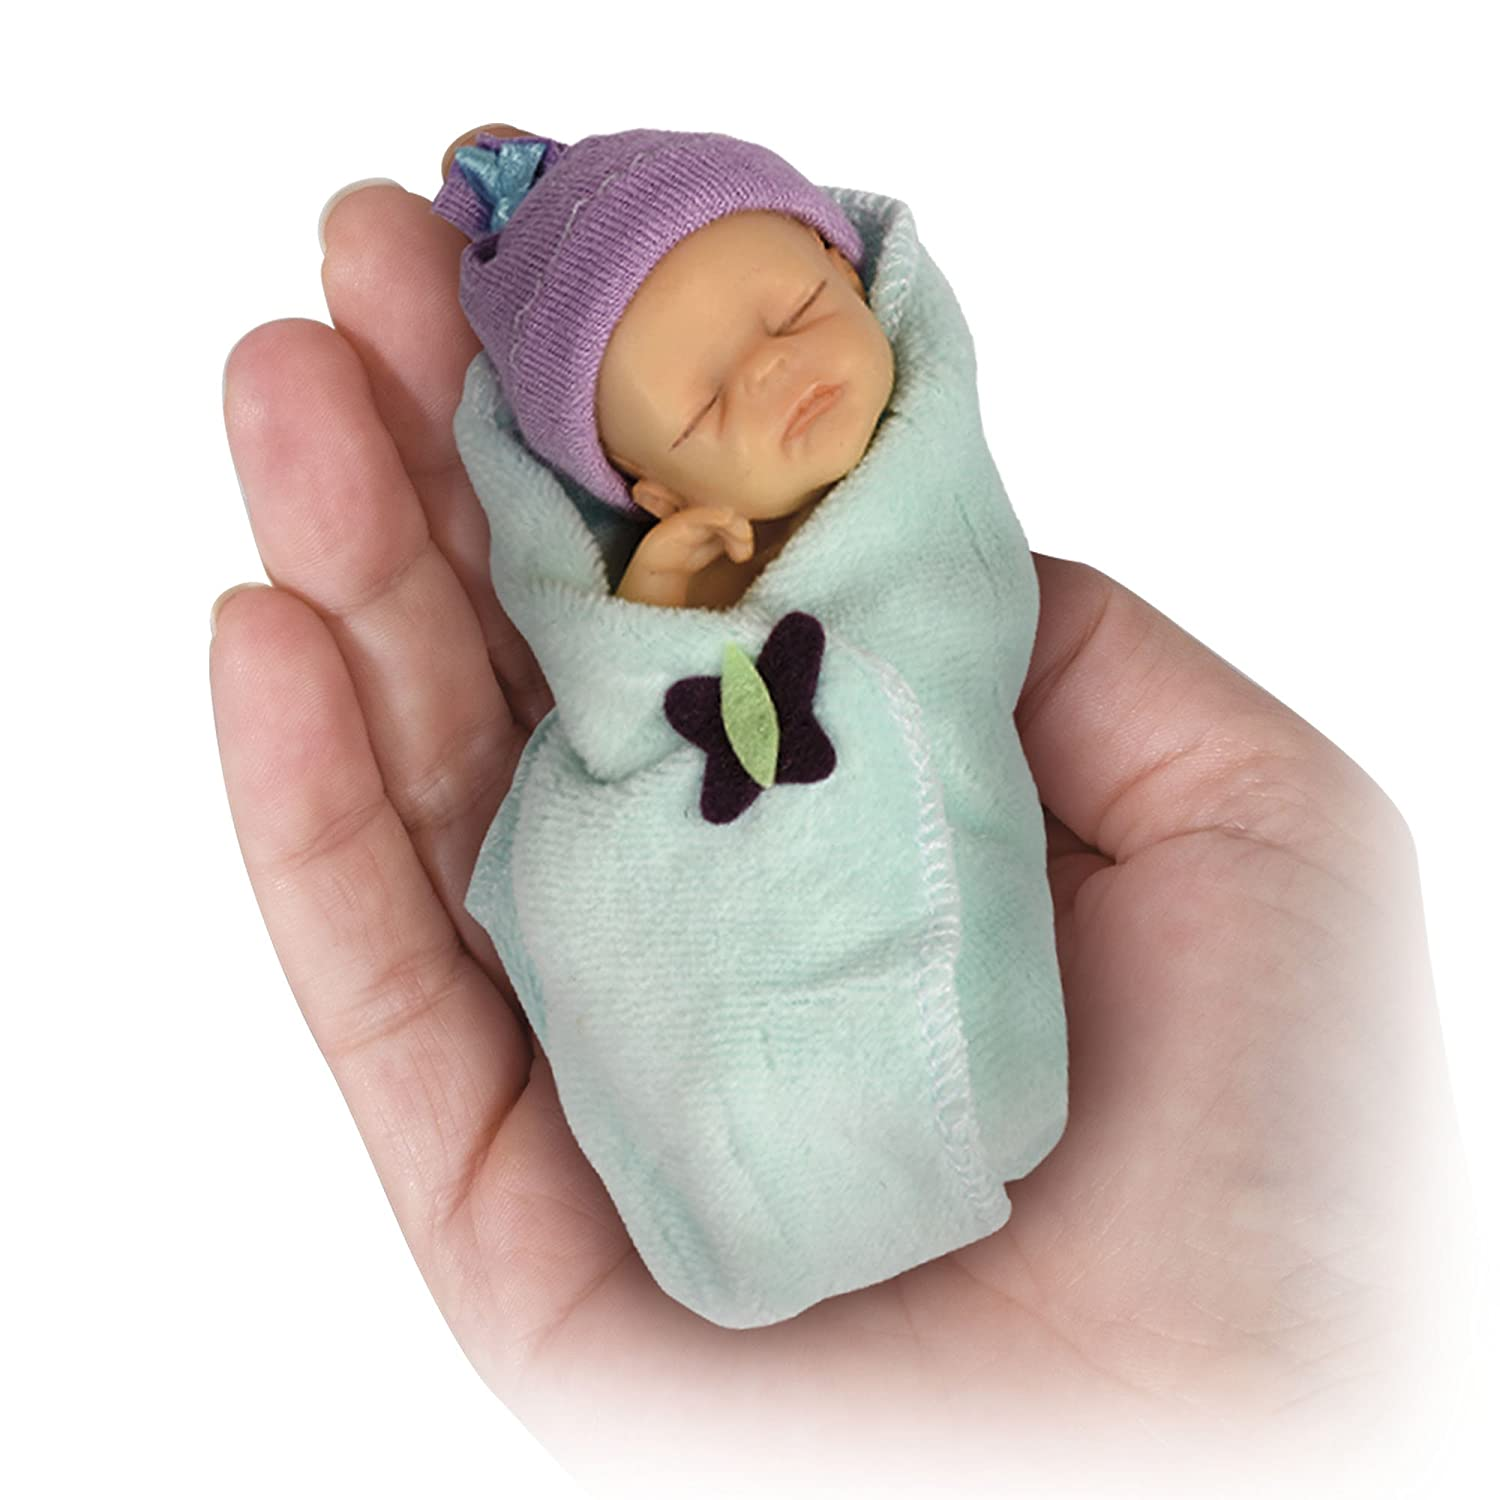 Ashton Drake - Reborn Minature Bundle Babies 'Adorable Baby Doll 2' by Sherry Rawn - Includes Tiny Nappy & Cosy Blanket